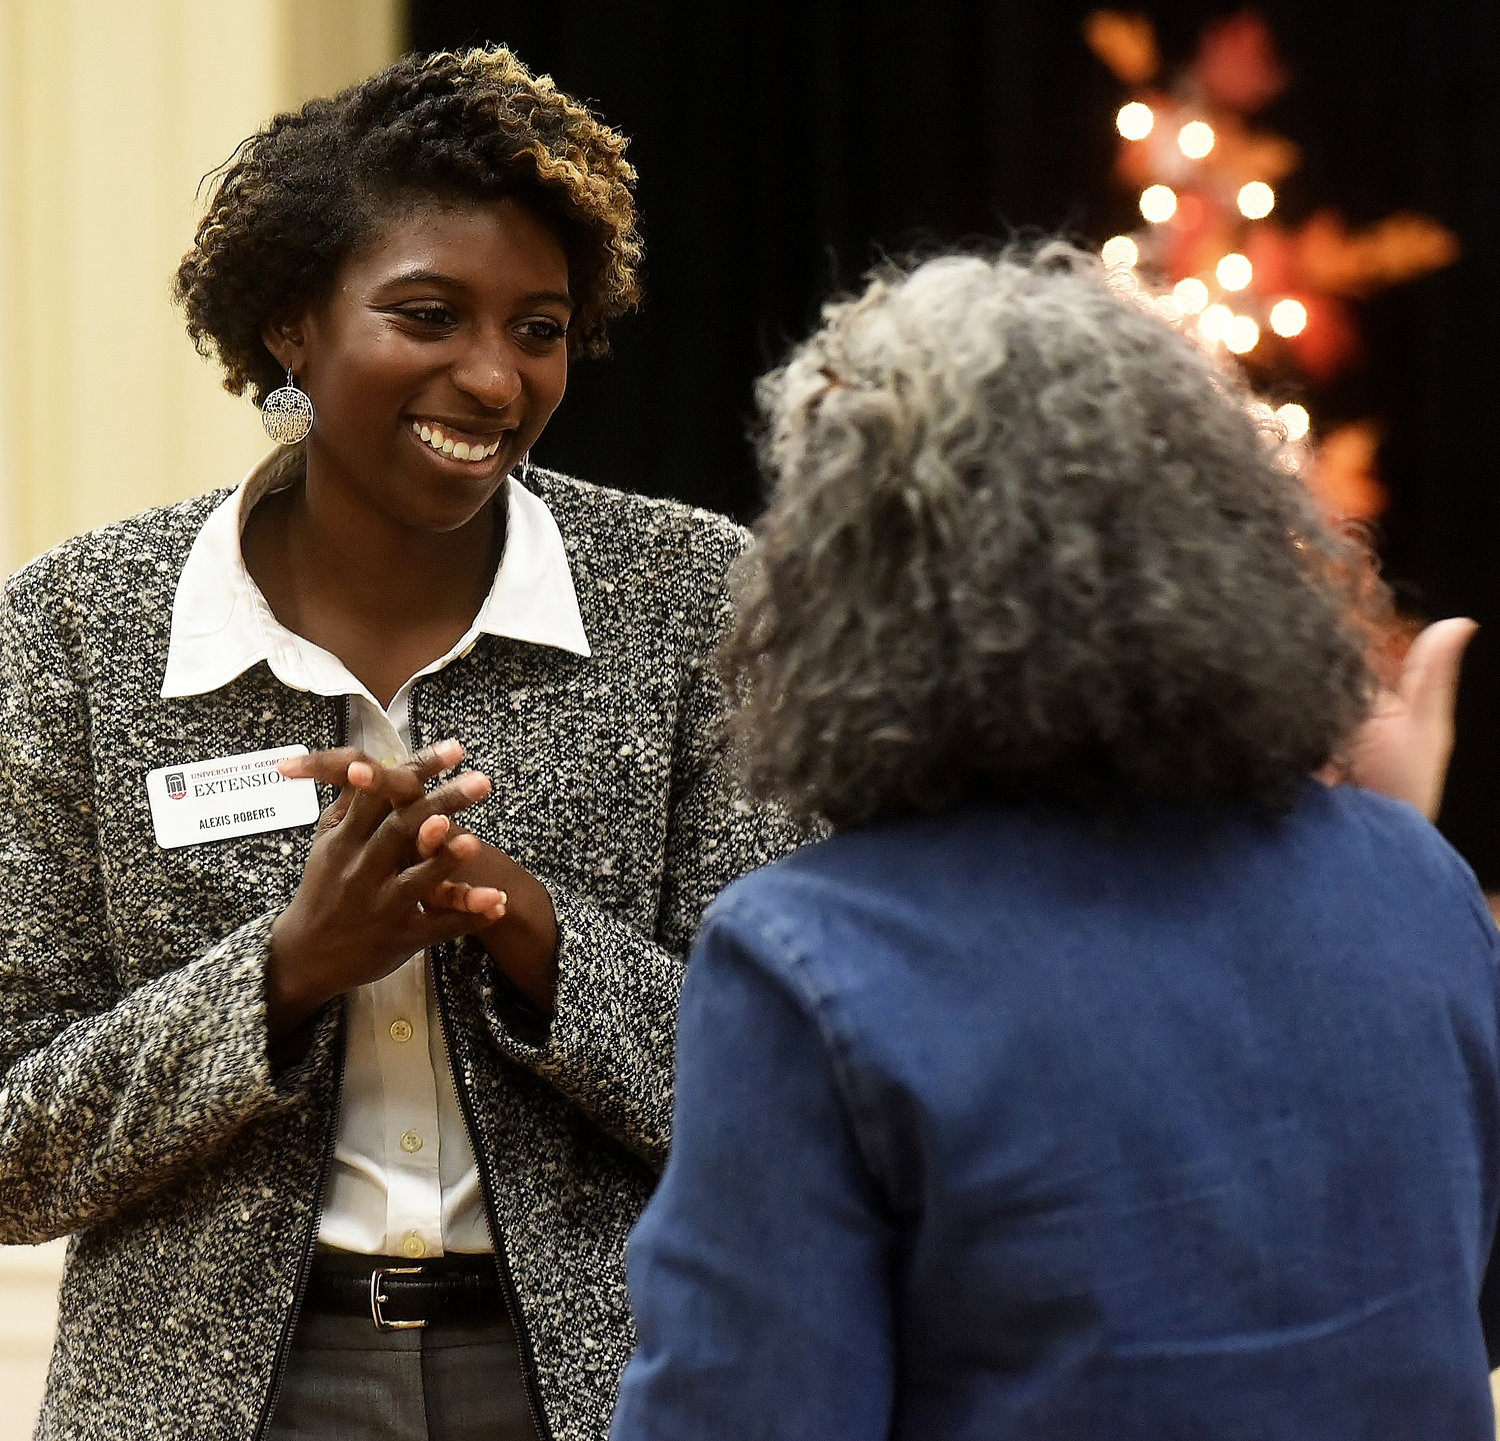 SNAP-Ed Supervisor Alexis Roberts, left, speaks with Karen Tindall at the Bartow County SNAP-Ed Appreciation Luncheon Nov. 29.